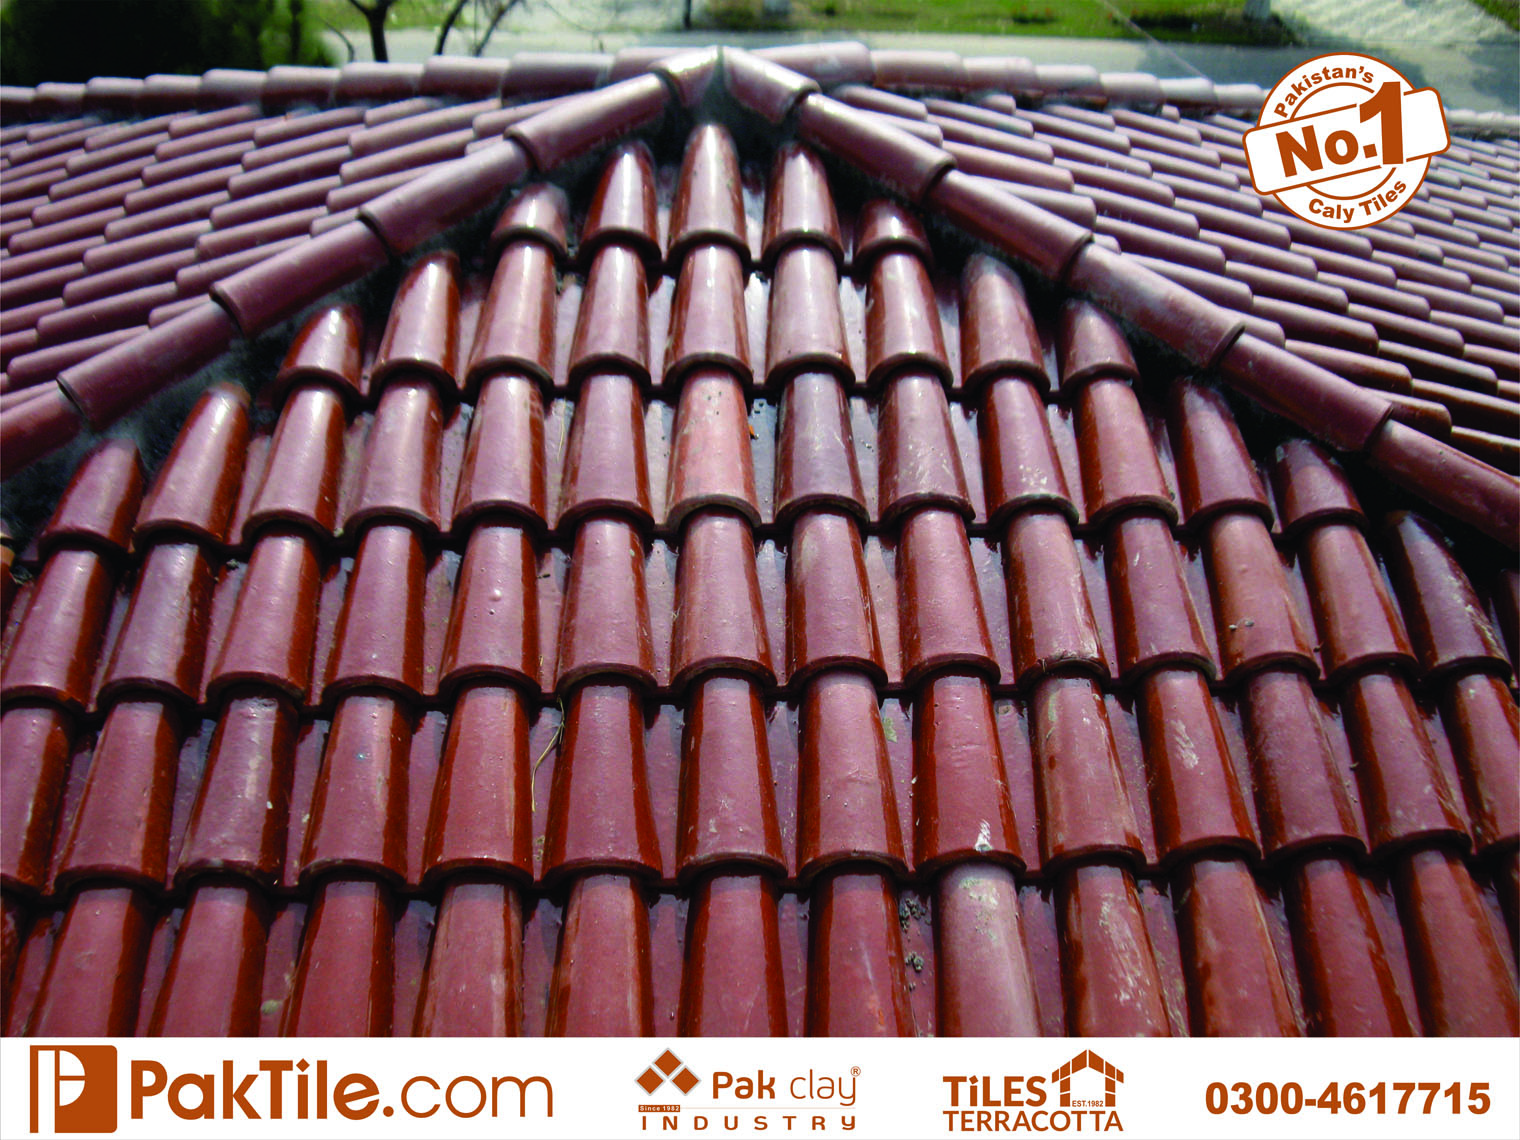 25 Buy online shop glazed roofing khaprail shingles glazed tiles marble rates in rawalpindi images